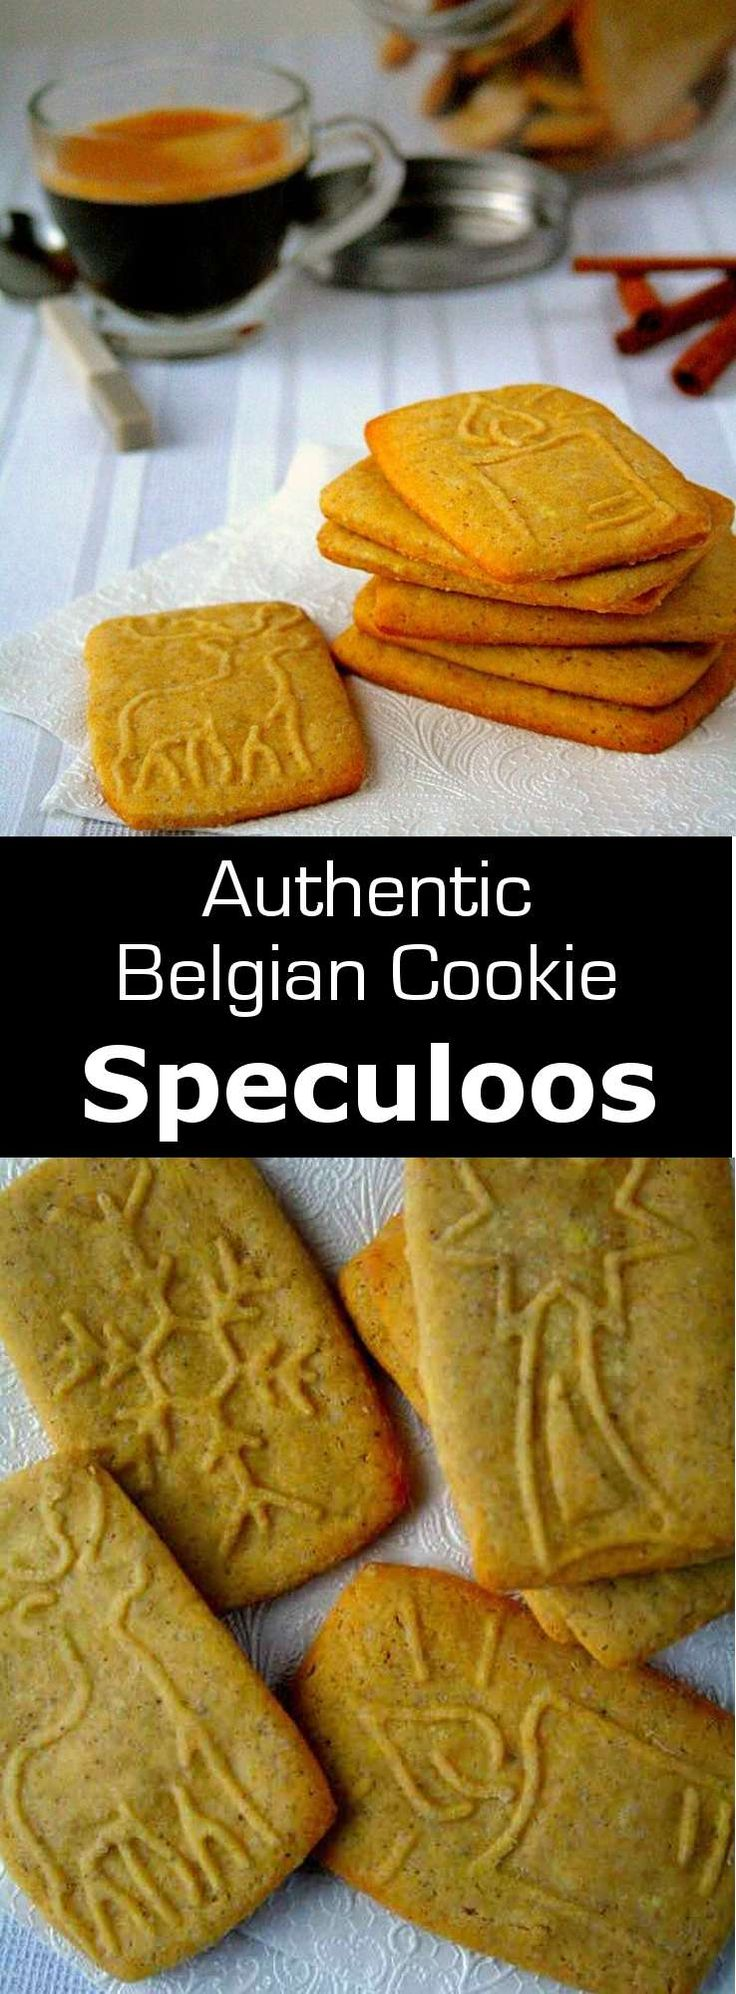 Speculoos are delicious and traditional St. Nicholas cookies from Belgium, with a distinct spiced flavor which can now be enjoyed all year. #cookie #belgium #196flavors